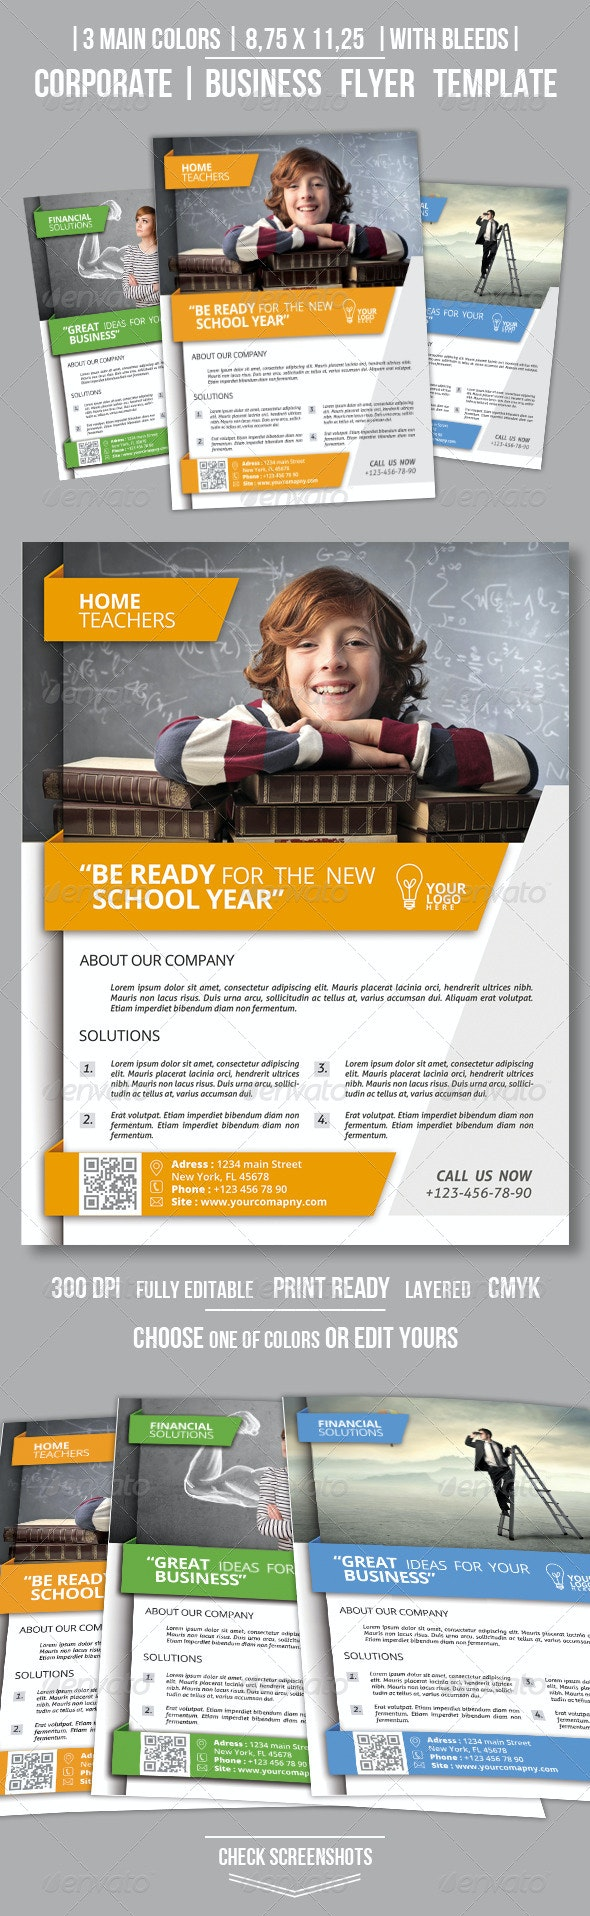 Clean Corporate Business Flyer - Corporate Flyers